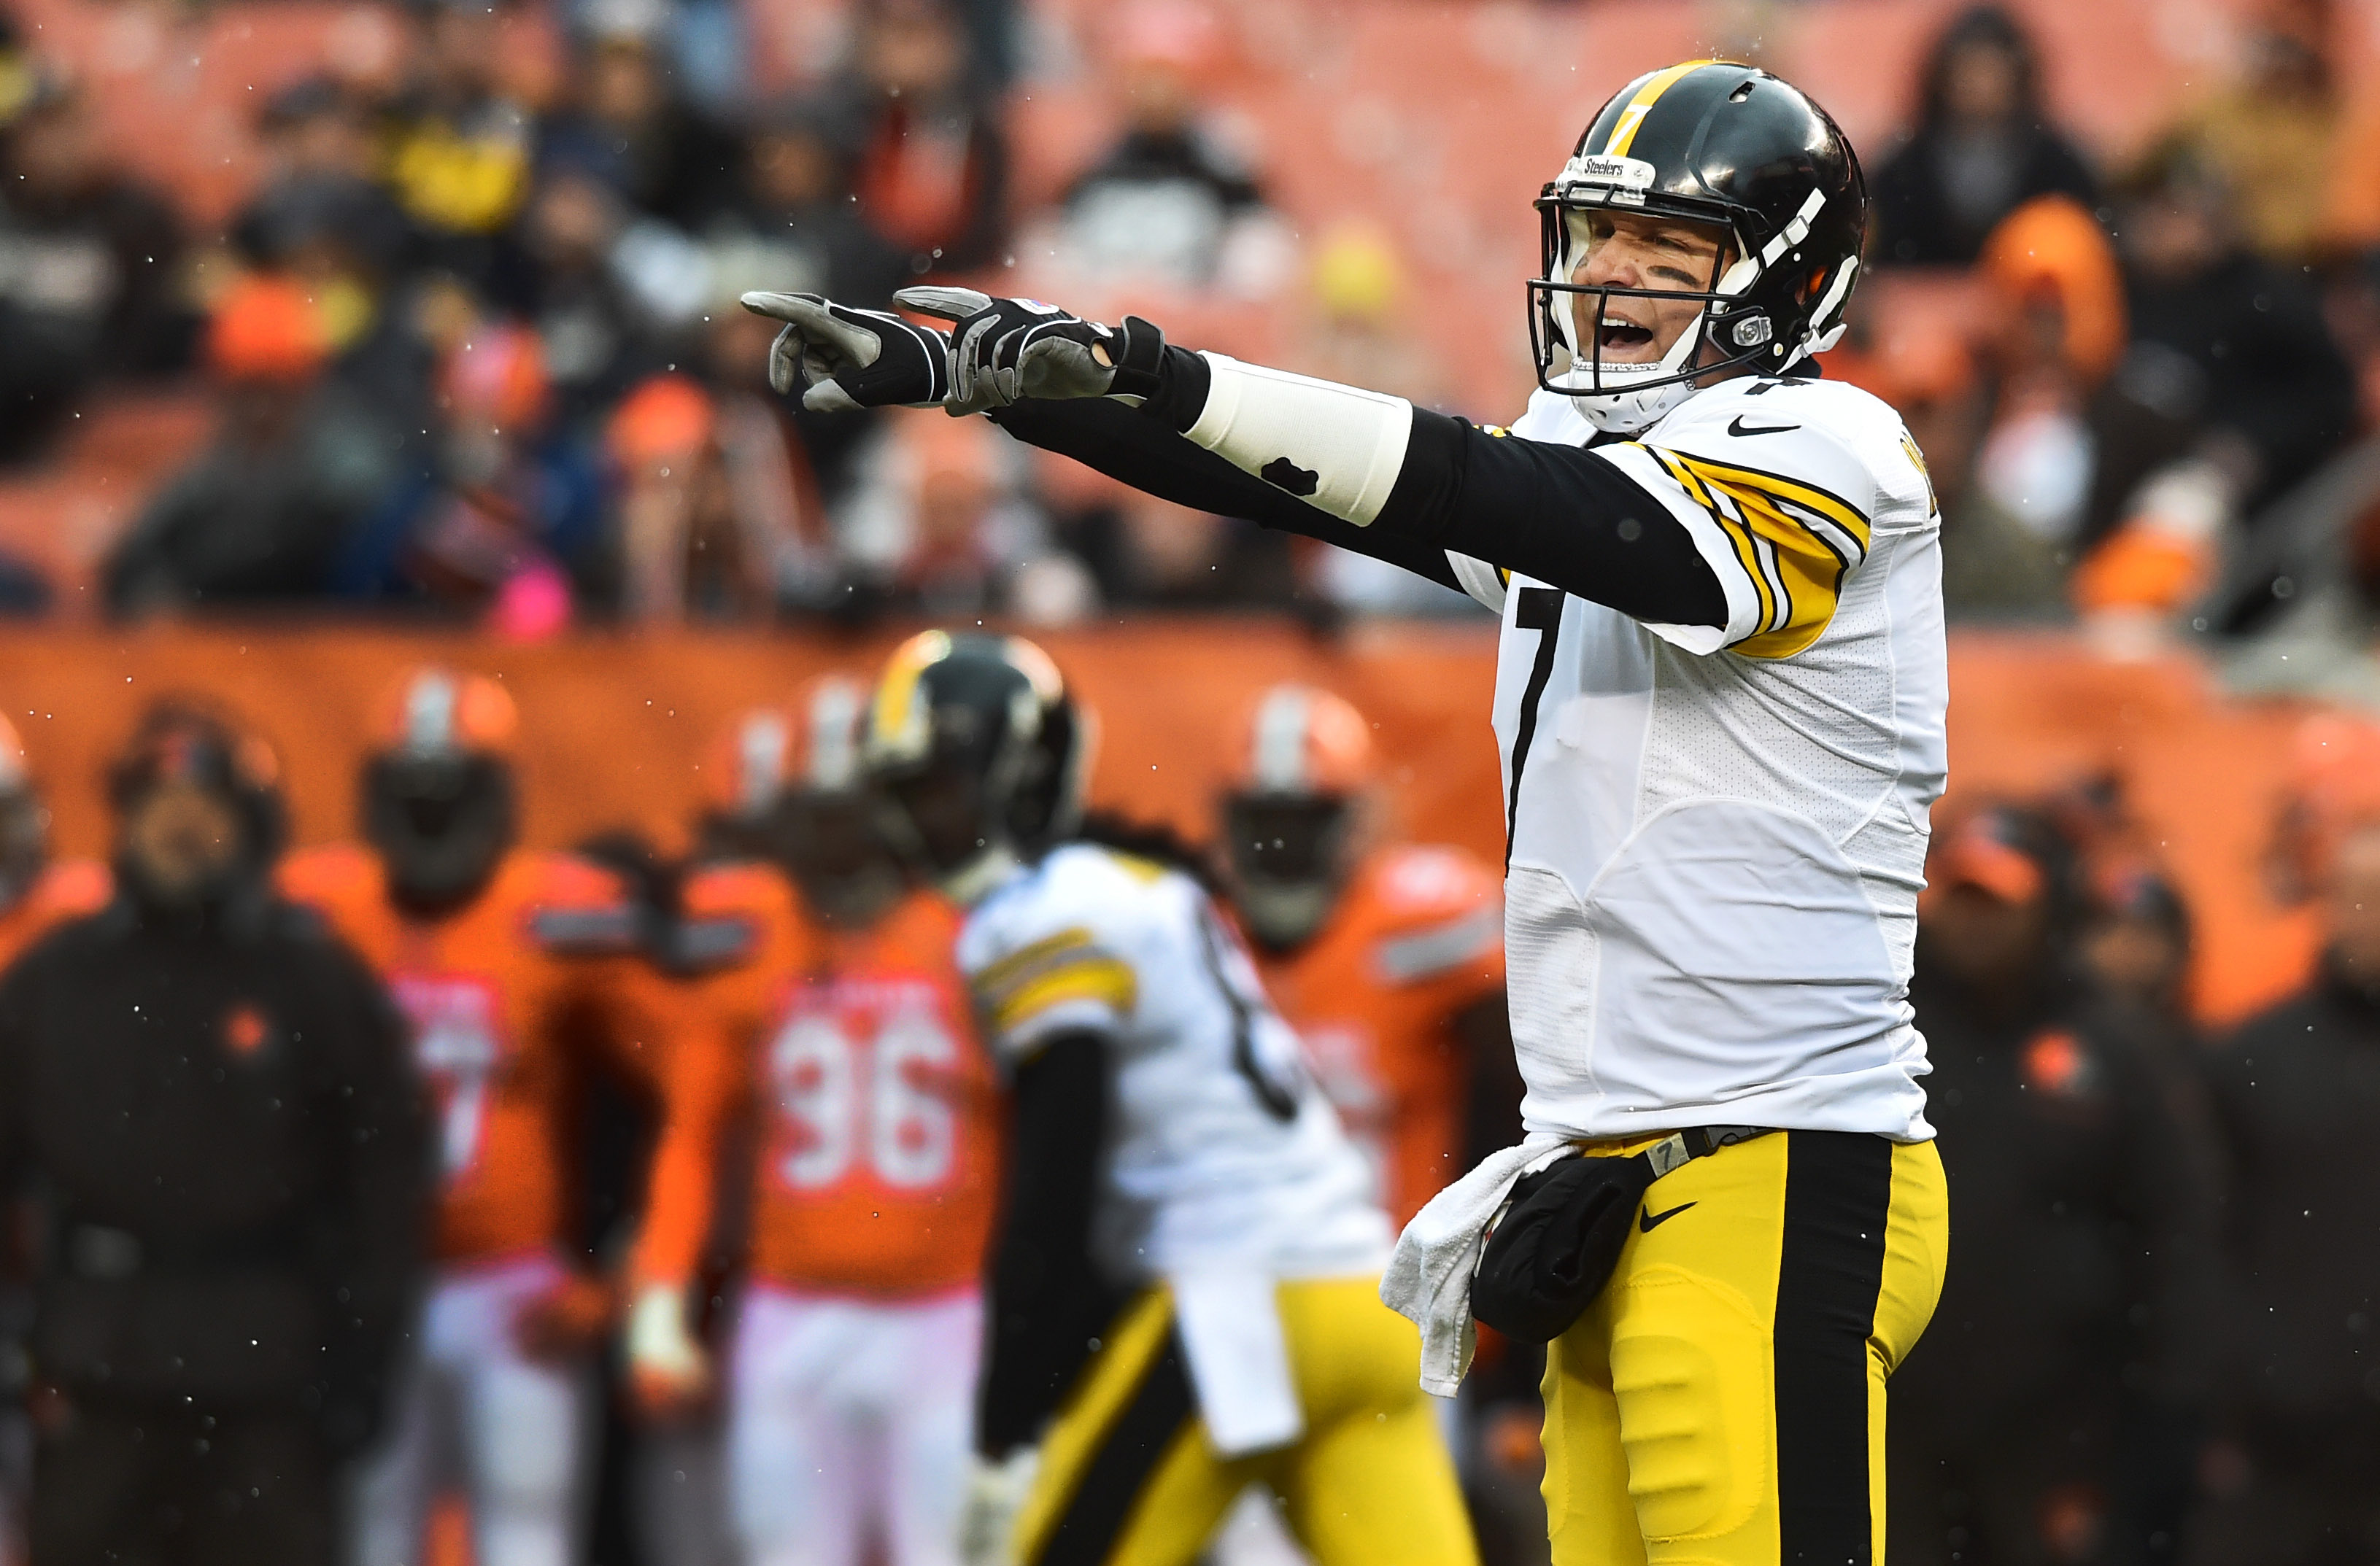 9698441-nfl-pittsburgh-steelers-at-cleveland-browns